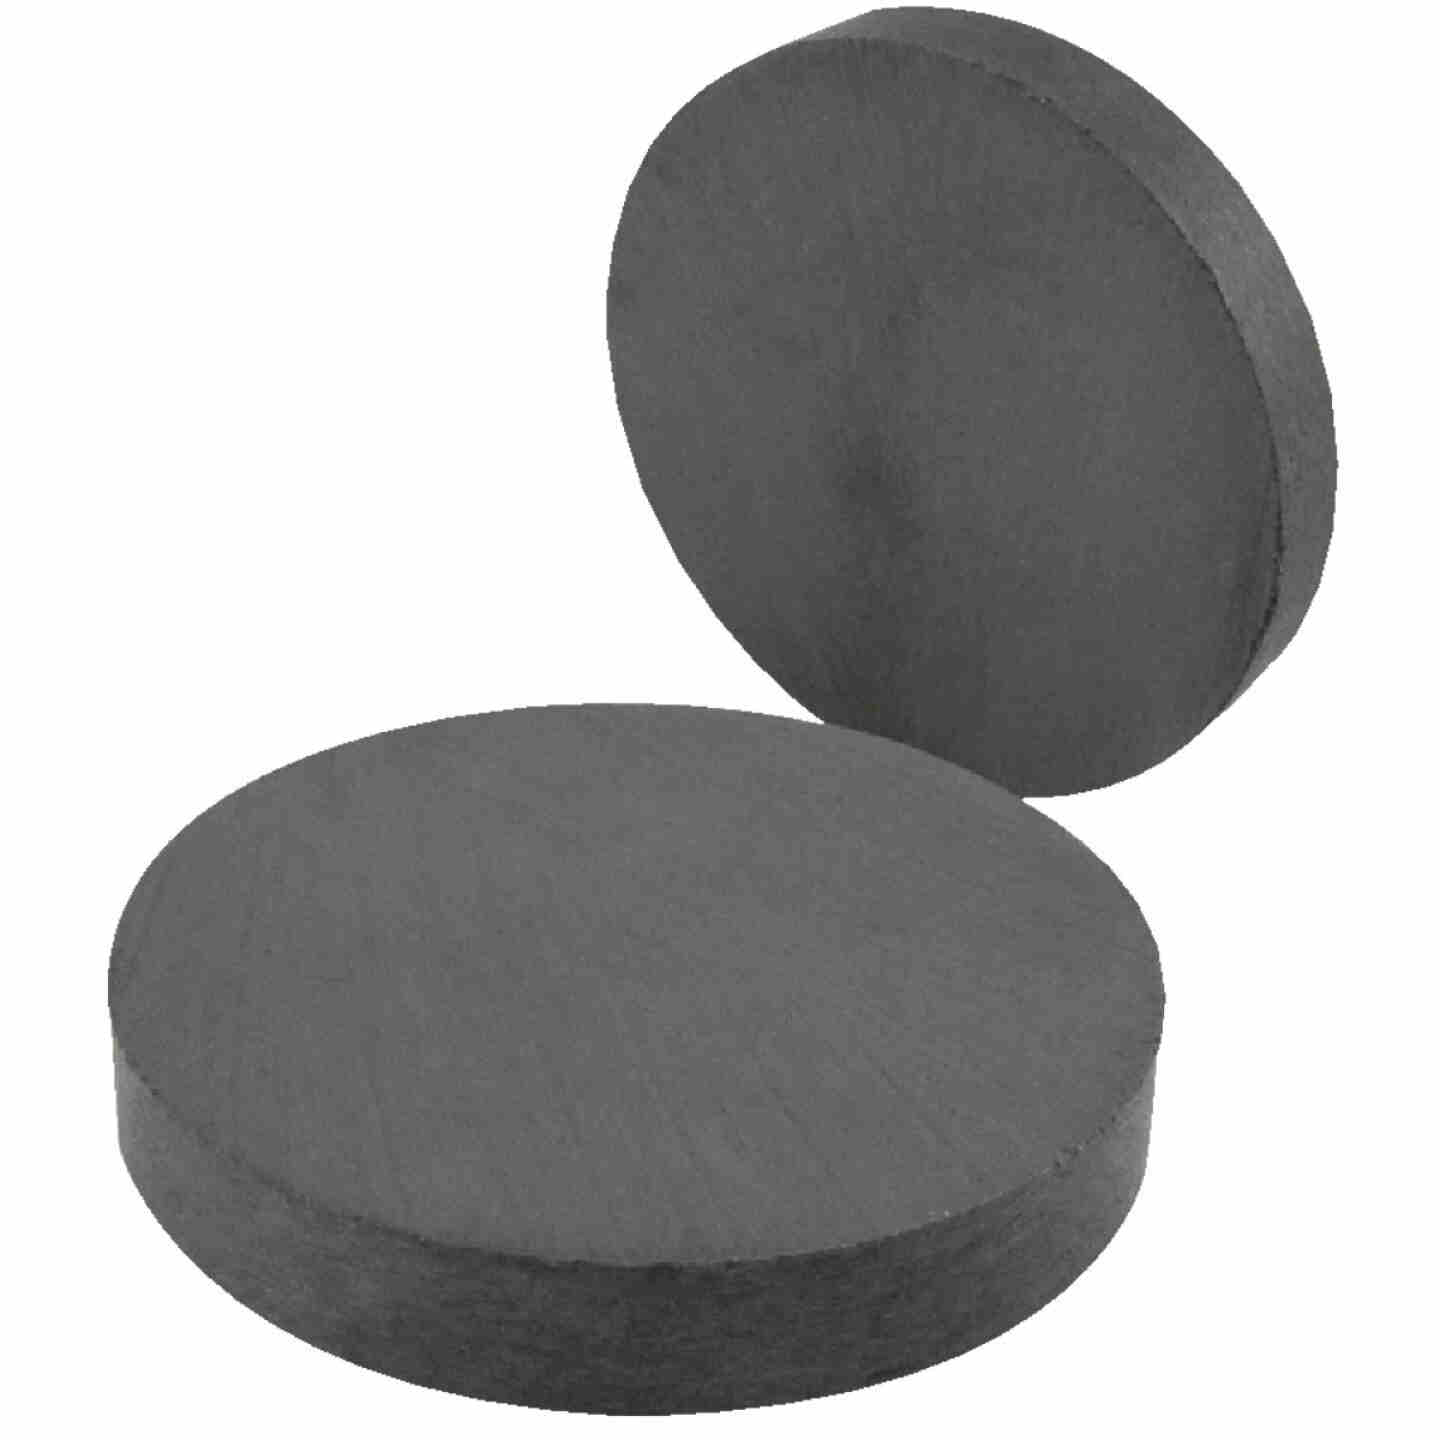 Master Magnetics Ceramic 1 in. Magnetic Discs (6-Pack) Image 1